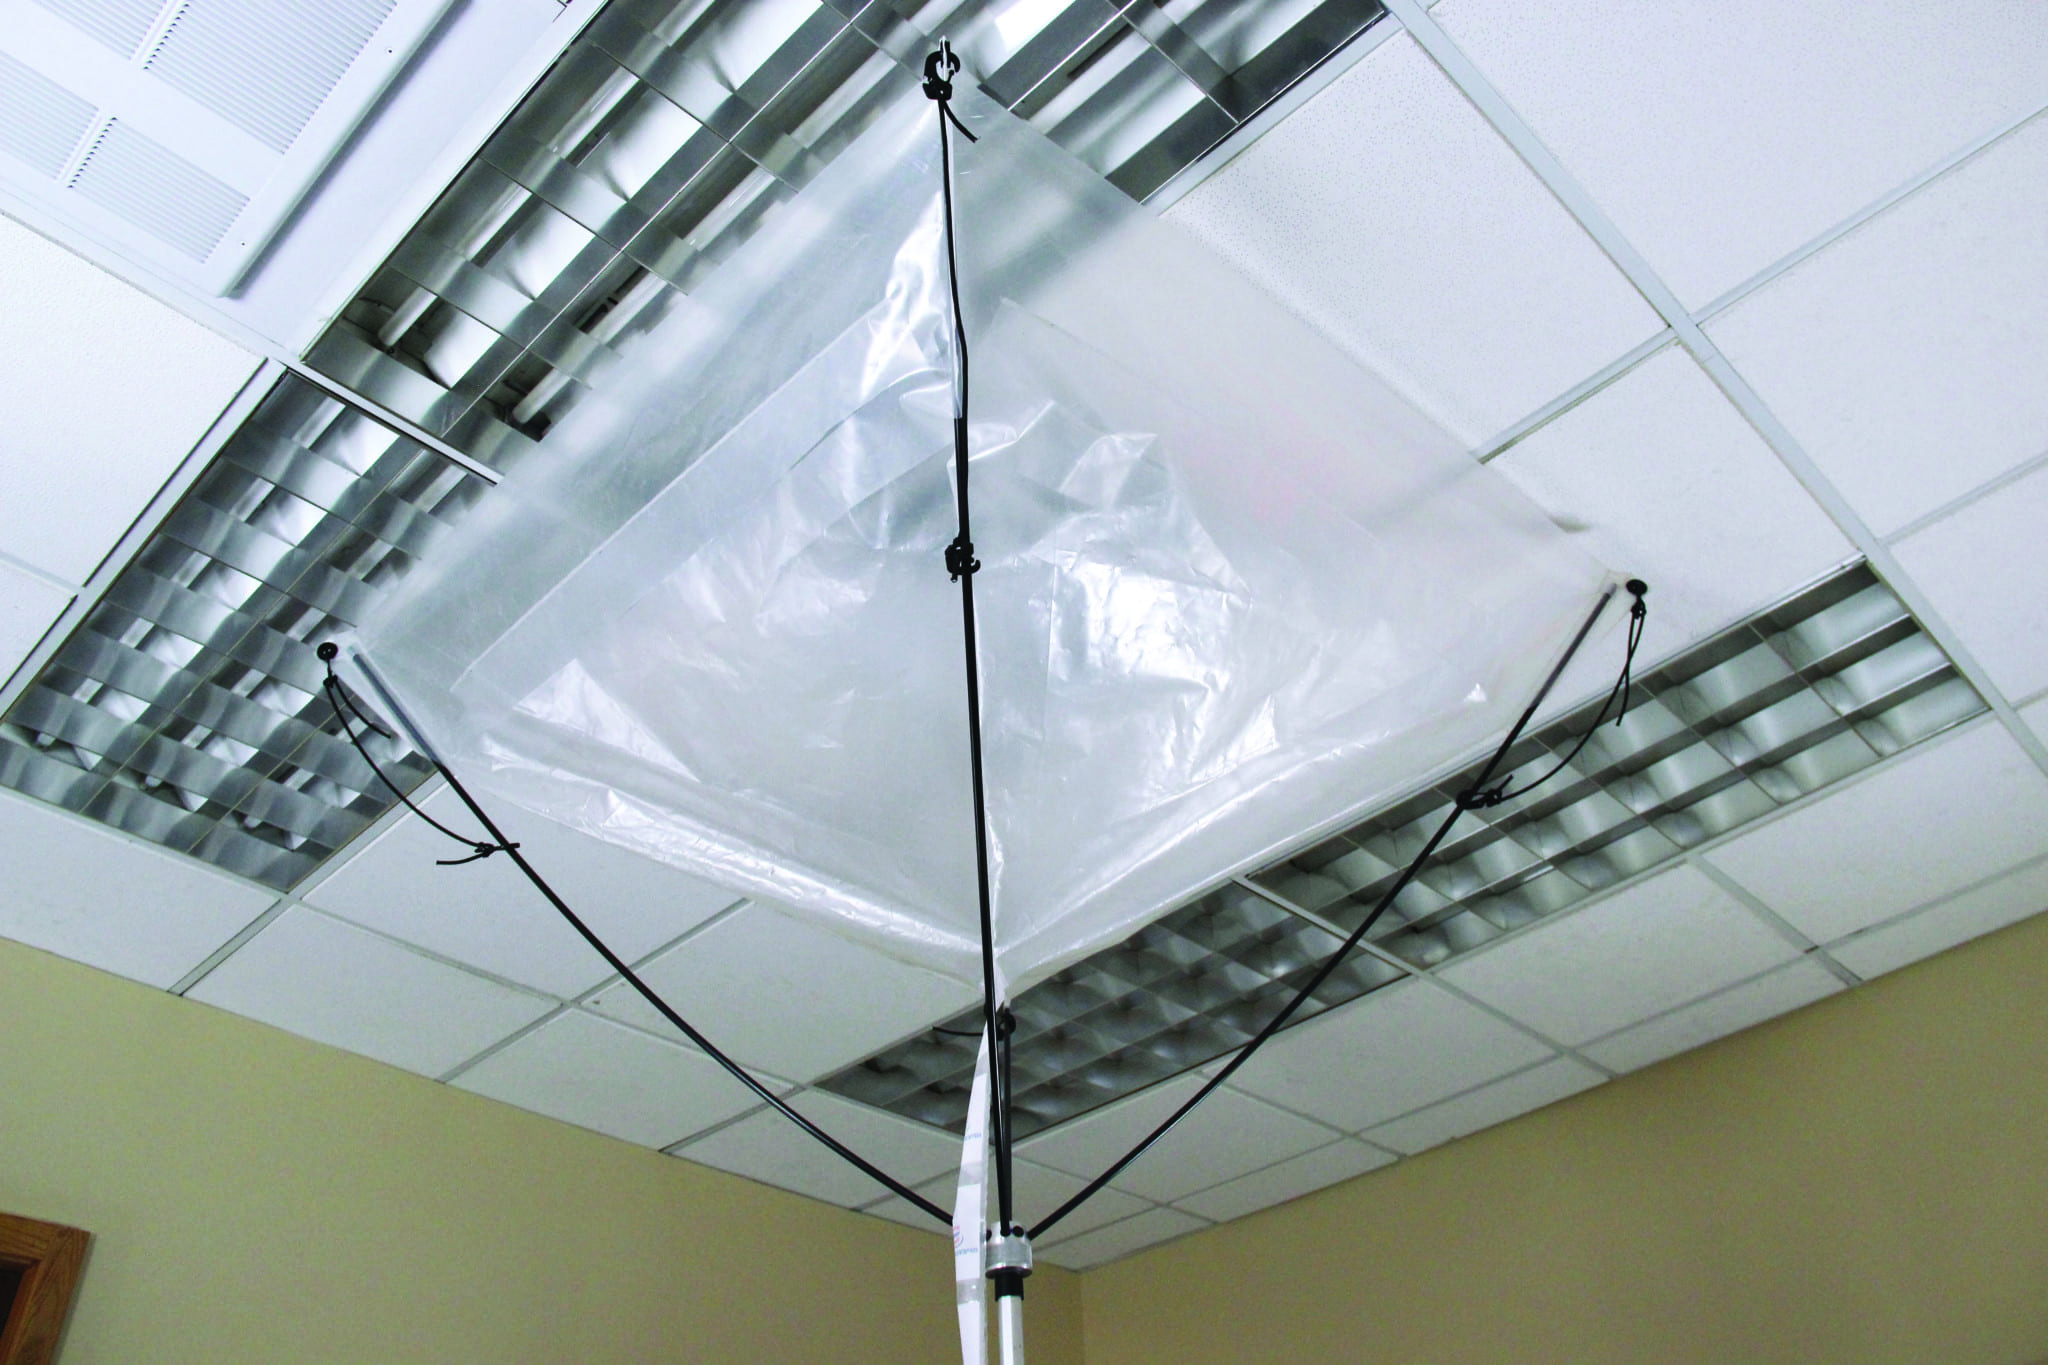 New Ductless Ceiling Cassette Bib Kit Is Money Maker for Contractors  #756450